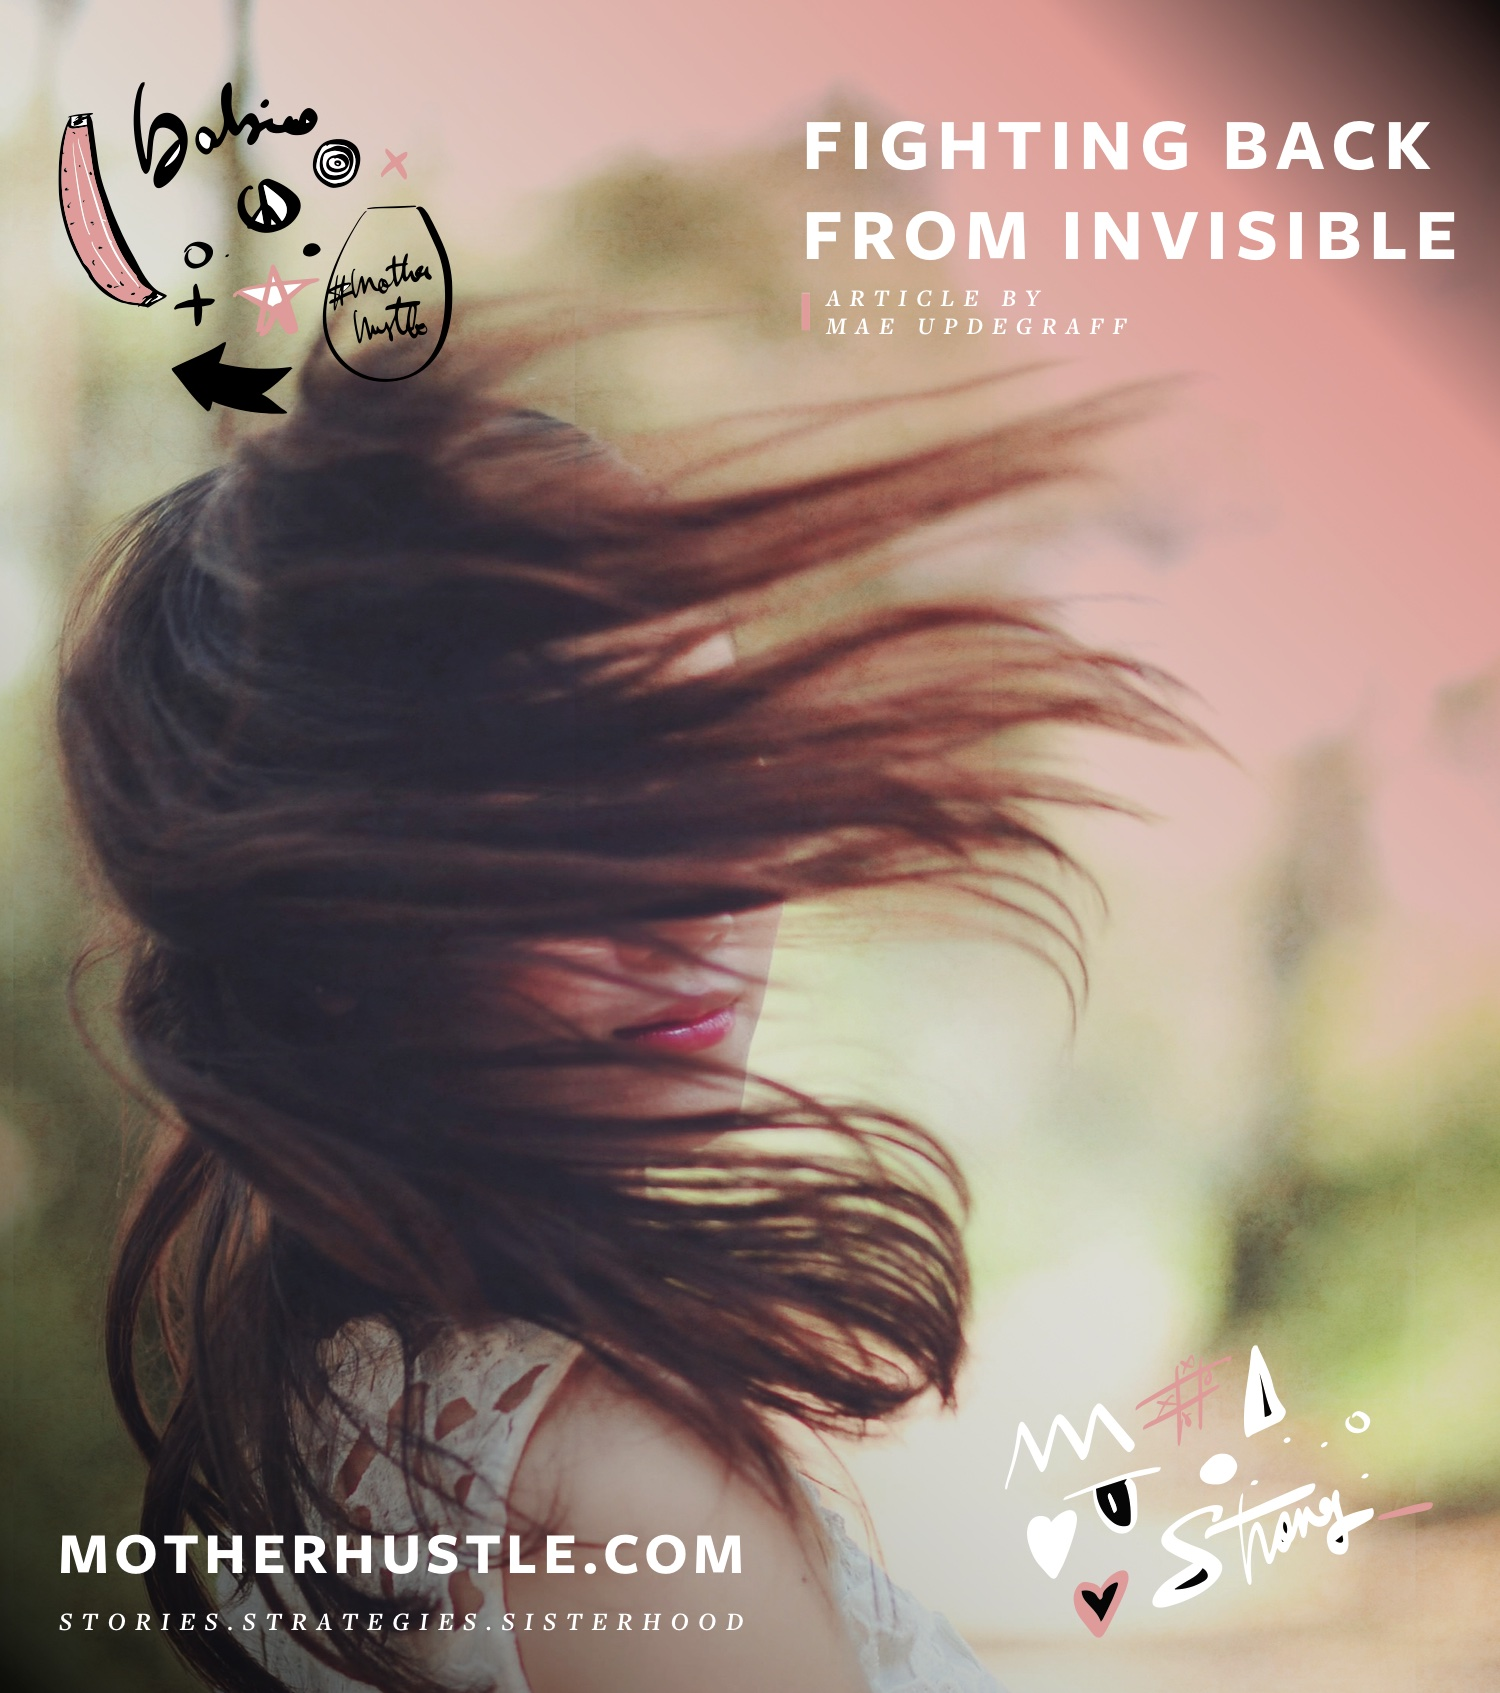 Fighting Back From Invisible - Mae Updegraff MotherHustle